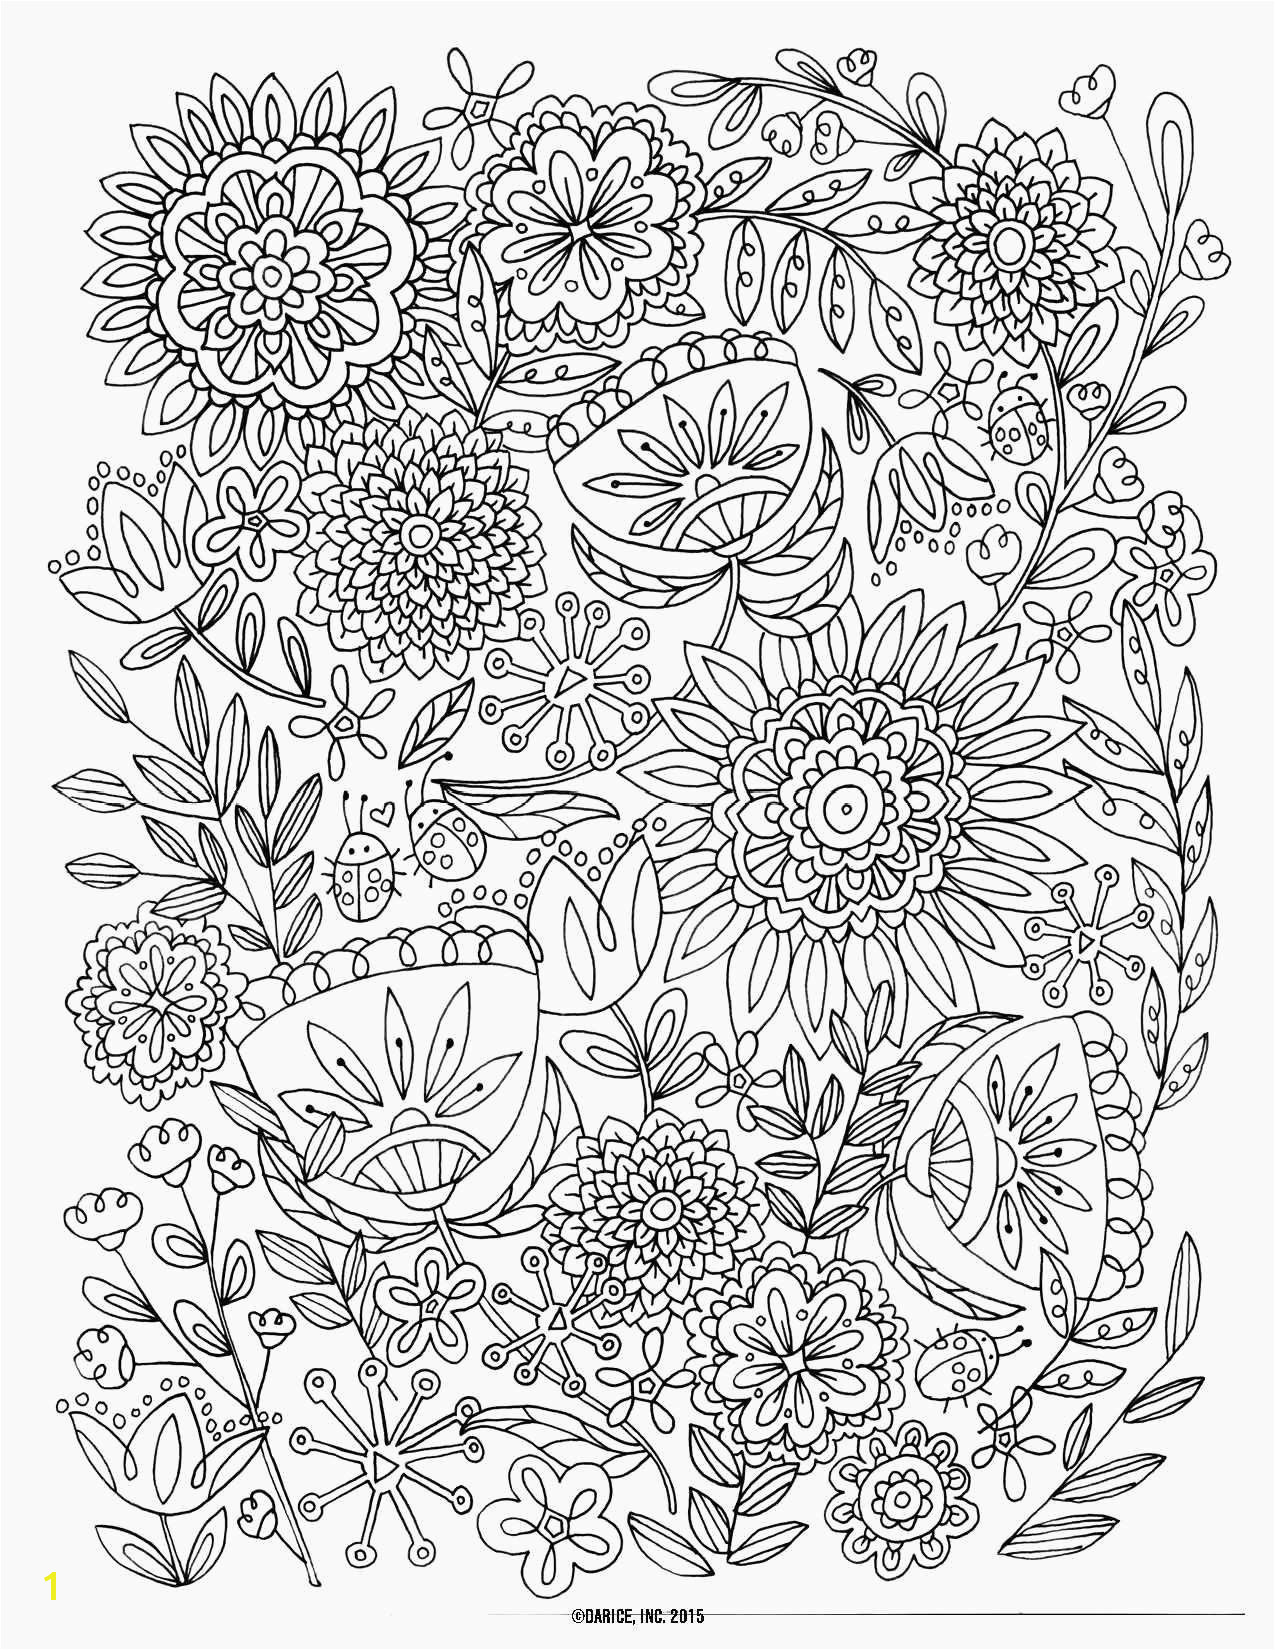 Winter Coloring Pages Printable Free Winter Coloring Pages Fresh Free Colouring Pages Printable Page